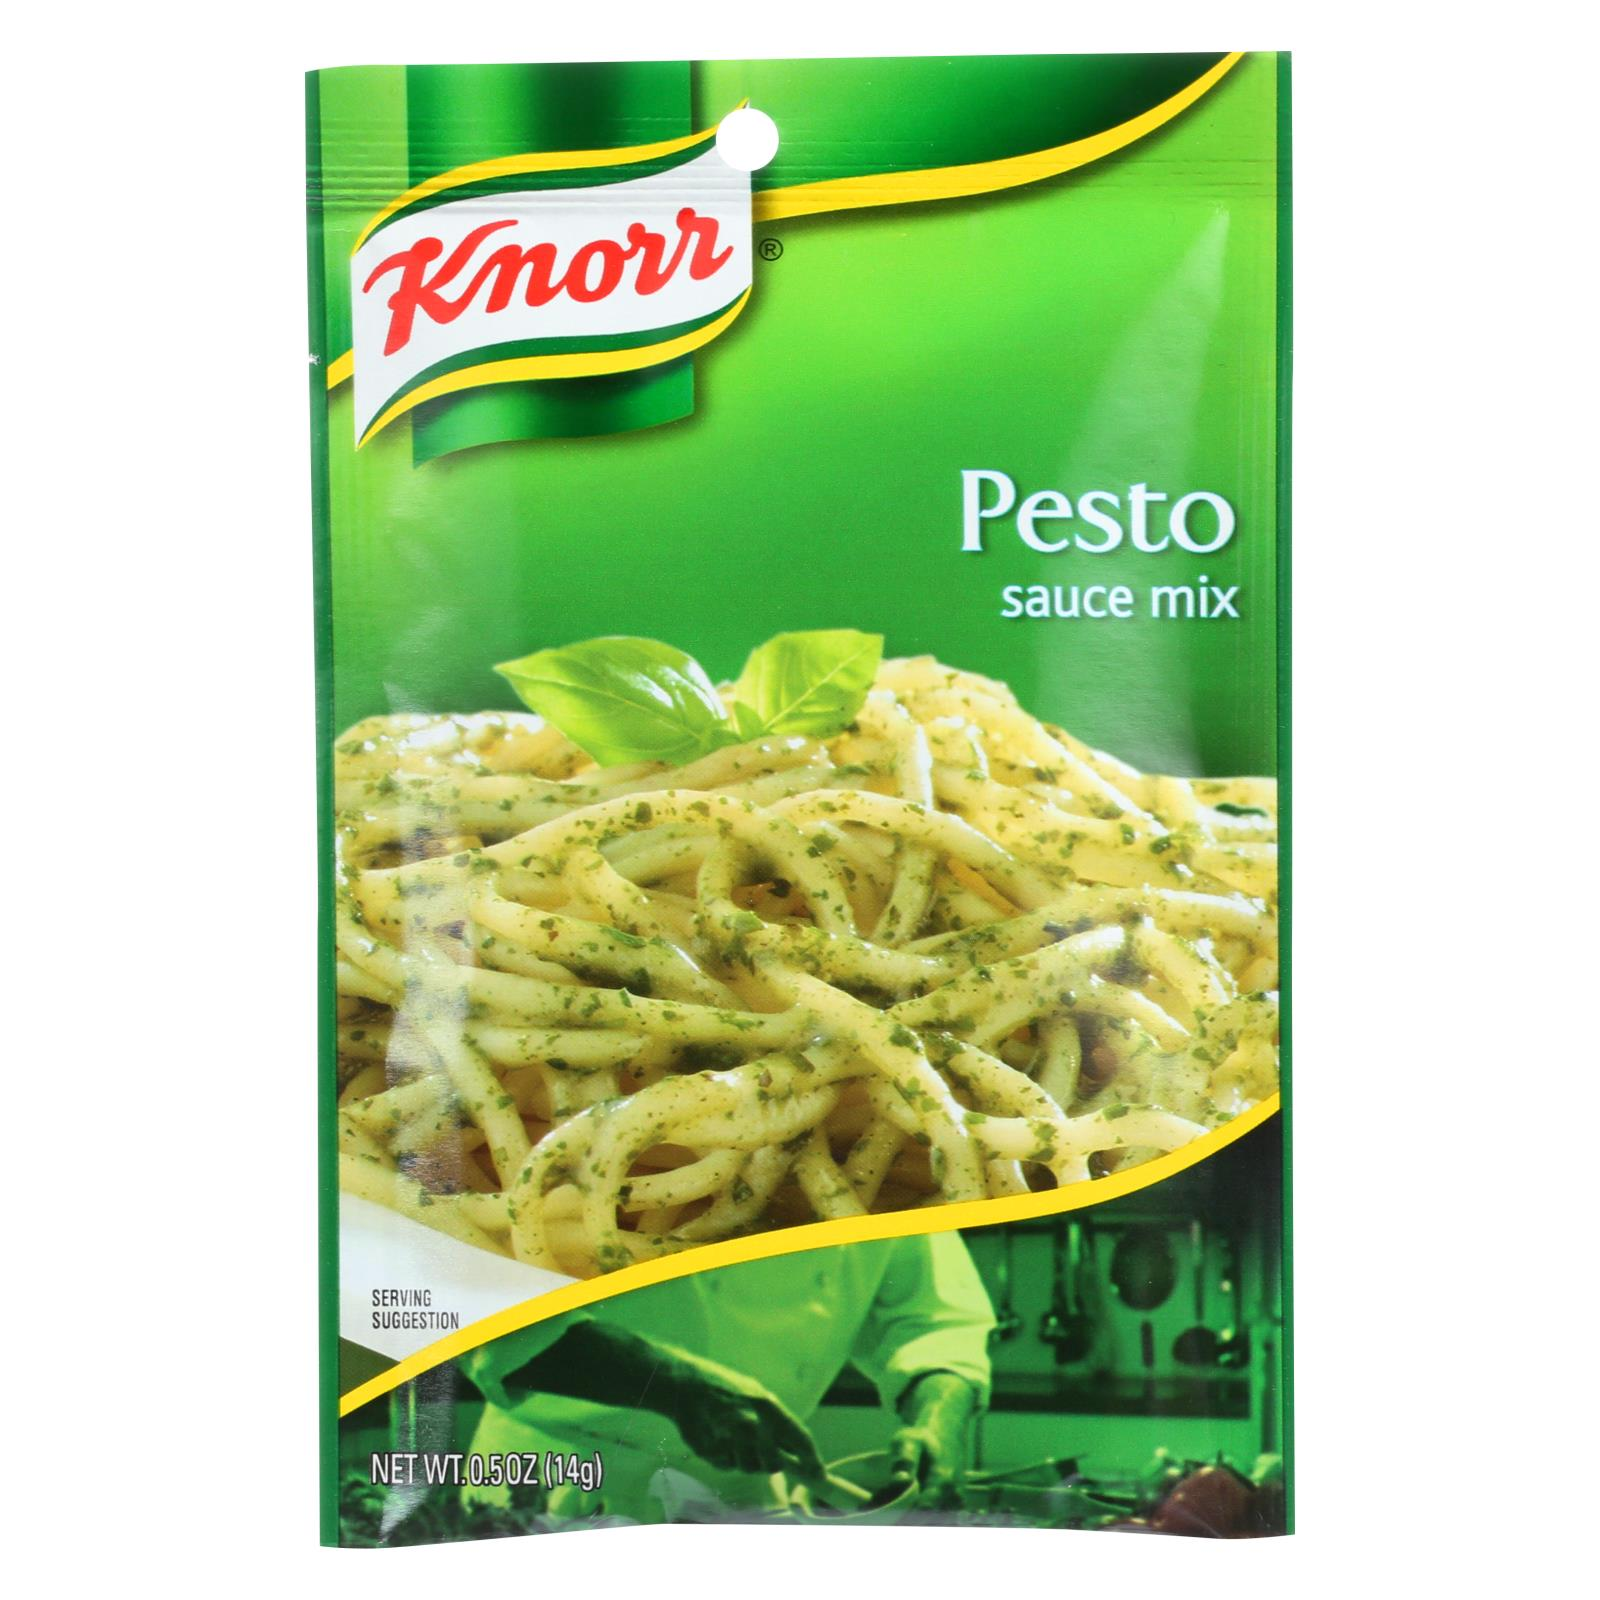 Knorr Sauce Mix - Pesto - .5 Oz - Case Of 12